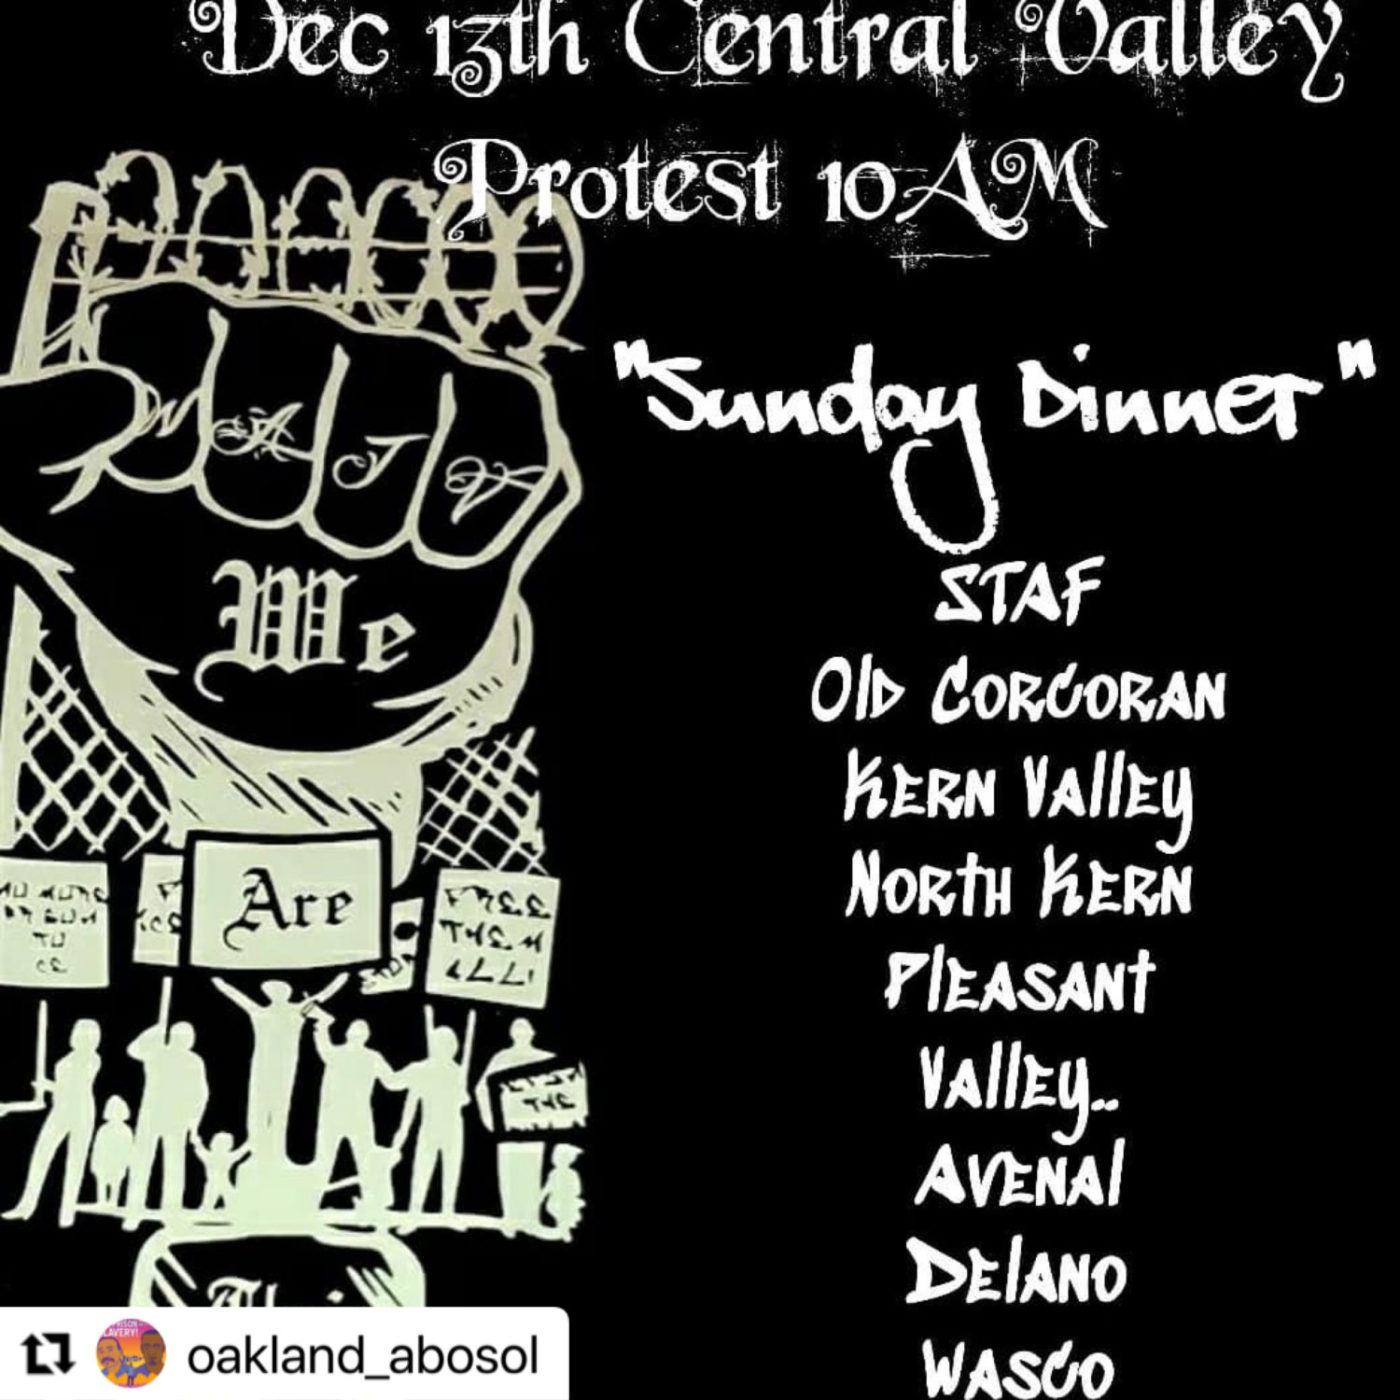 Dec-13th-Central-Valley-Protest-flier-by-ABOSOL-1400x1400, 'They want us to get COVID; they don't care who dies': Prisoners' families stage Central Valley-wide protest Sunday, Dec. 13, Behind Enemy Lines